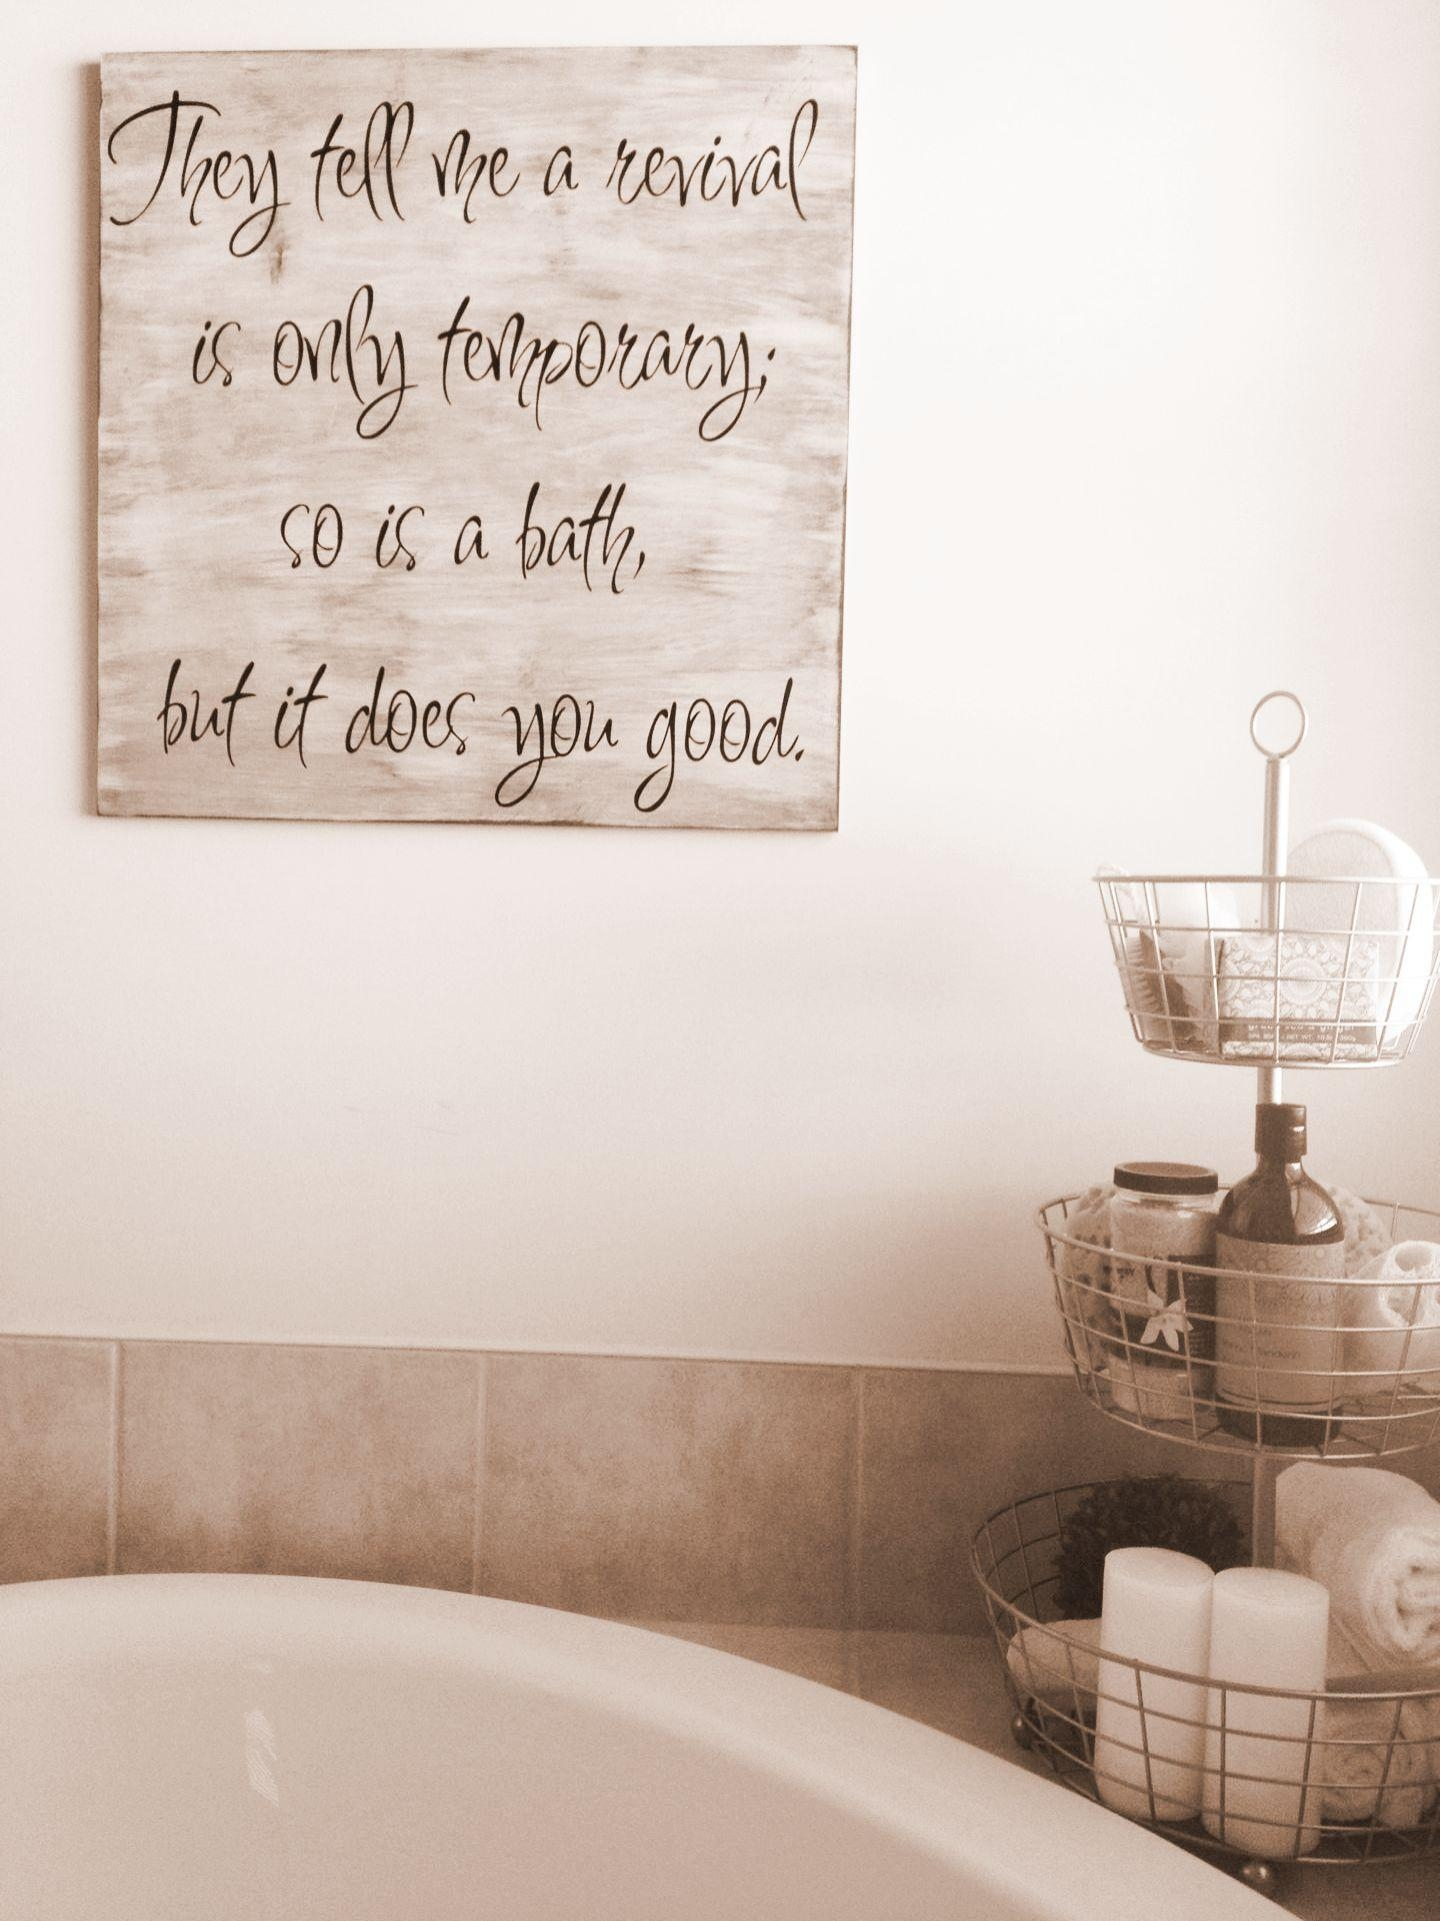 Lovely Bathroom Wall Art Ideas Decor For Your Home Decorating Throughout Art For Bathrooms Walls (Image 12 of 20)